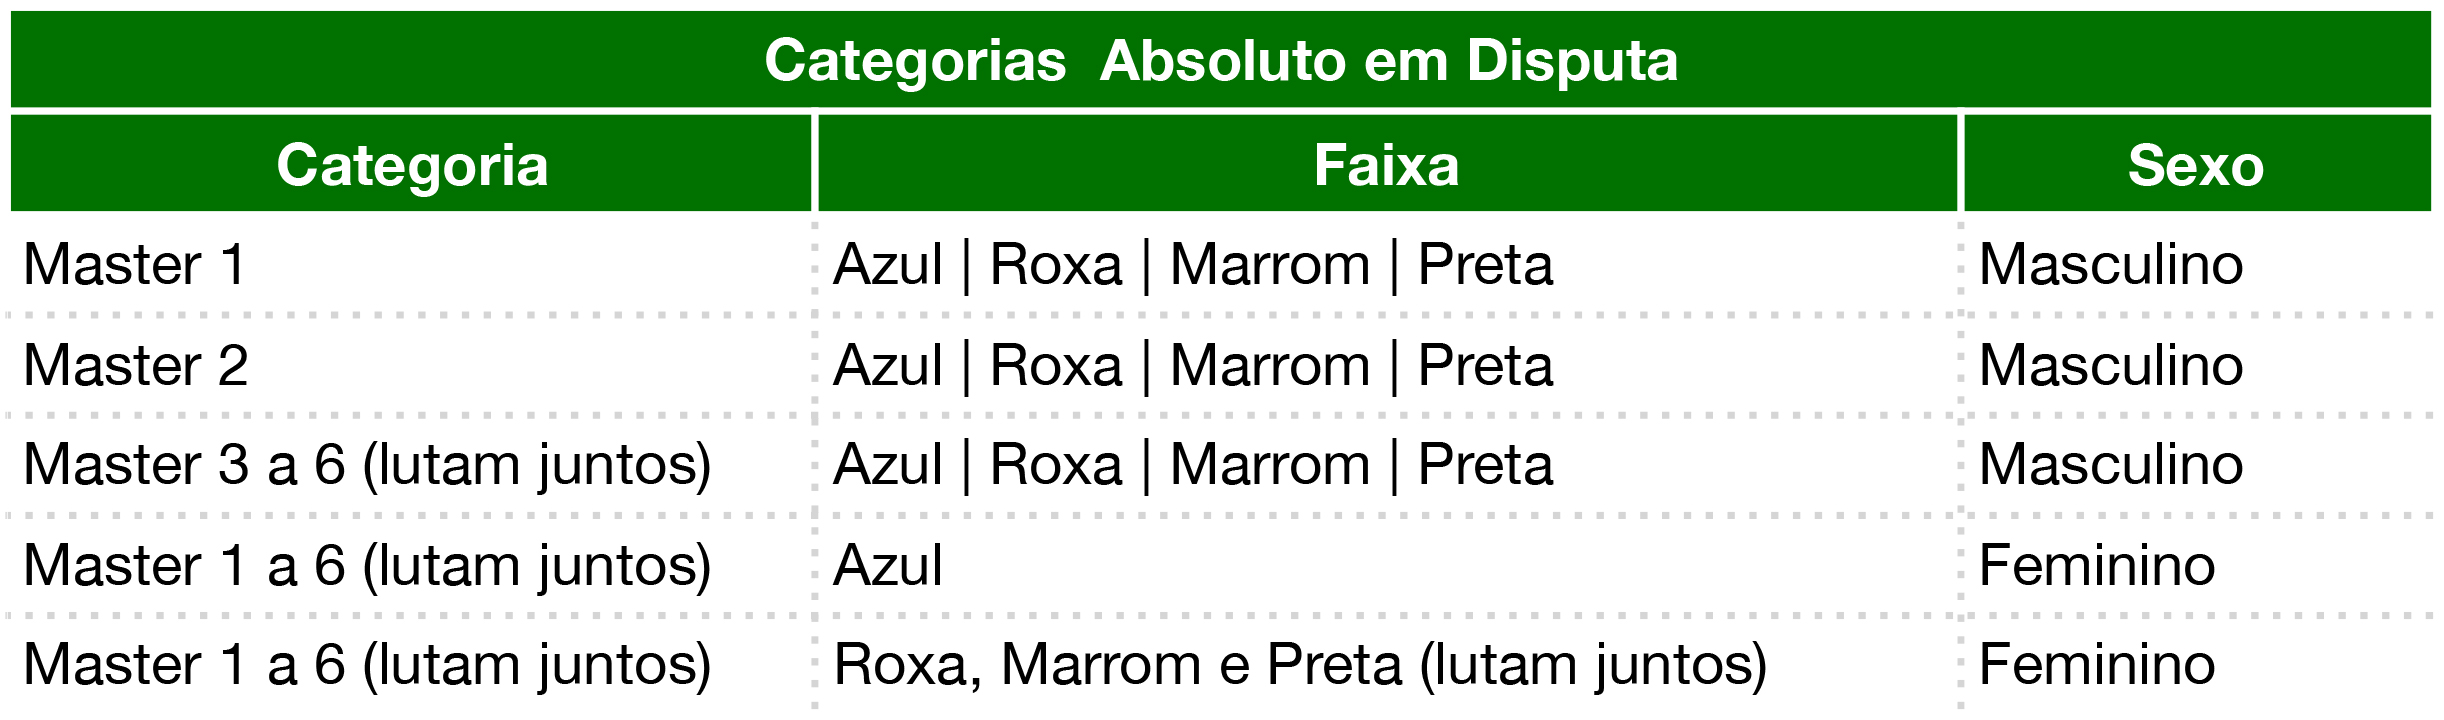 categoria-absoluto-em-disputa